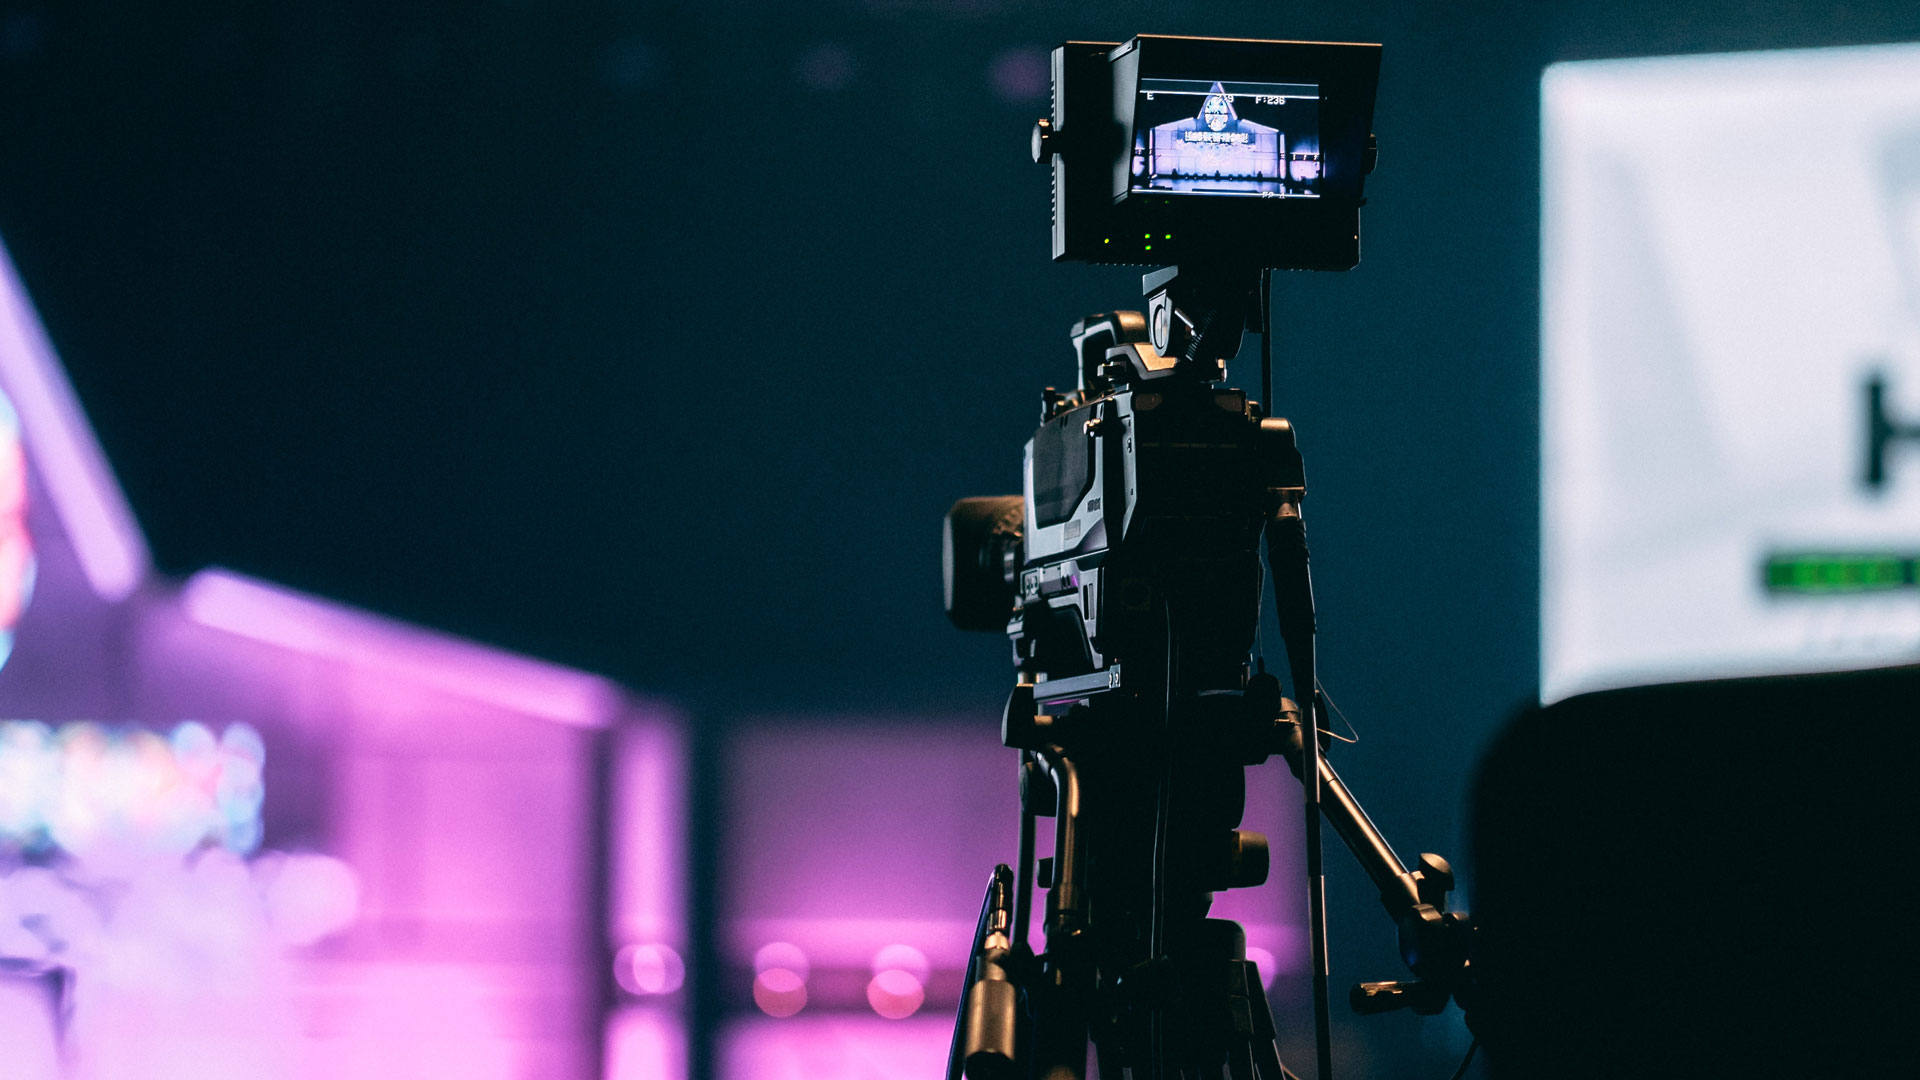 3 Steps To Make The Video Of Musical Worship More Engaging Online